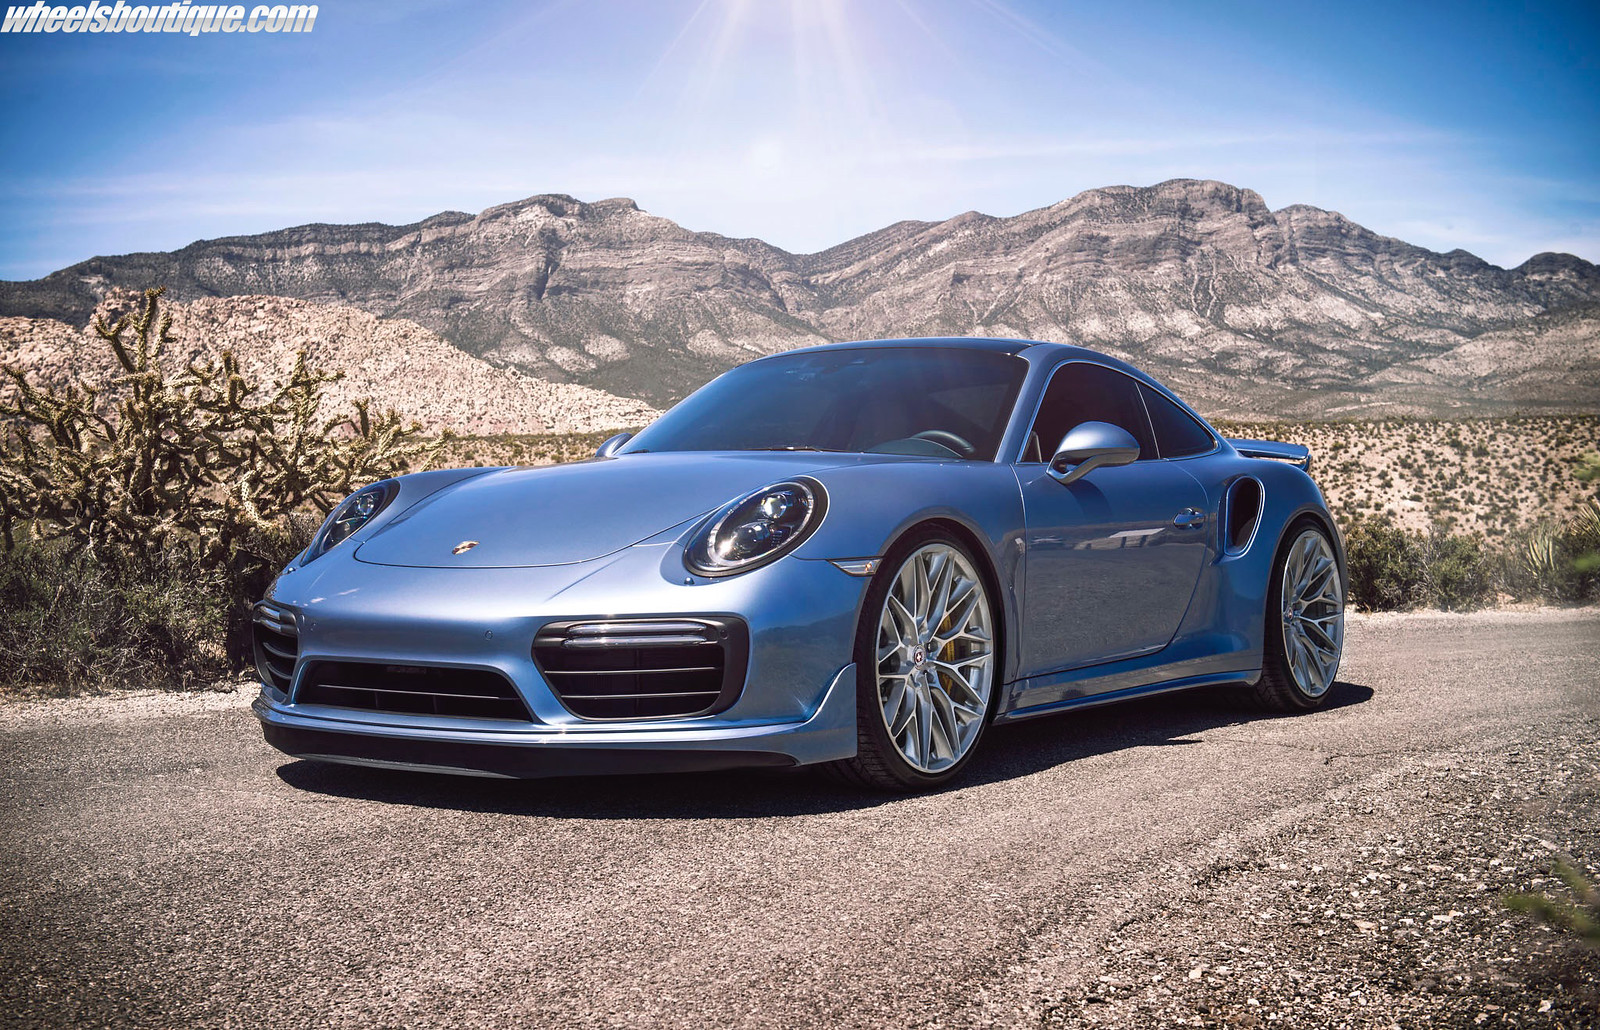 A Must See Ice Blue Metallic 991 Turbo S On Hre P200 S By